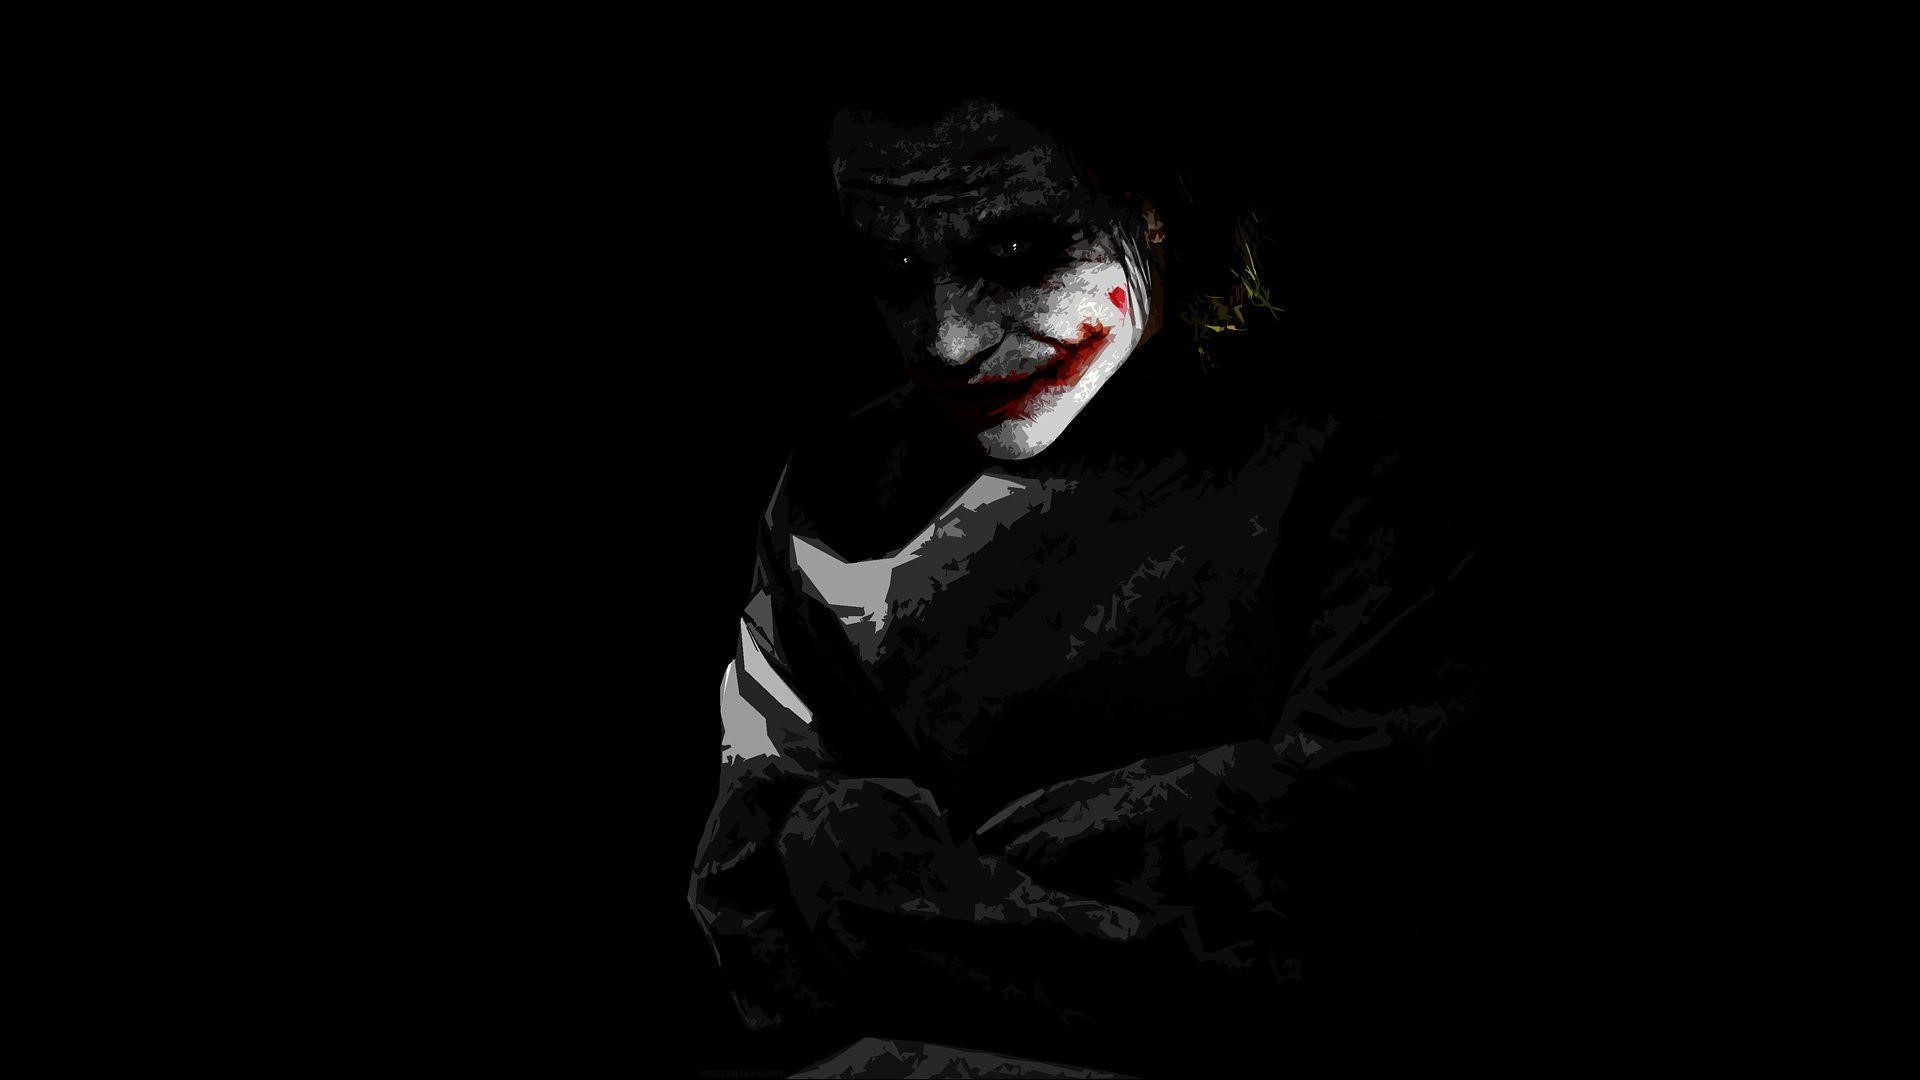 Joker 1080p Wallpapers